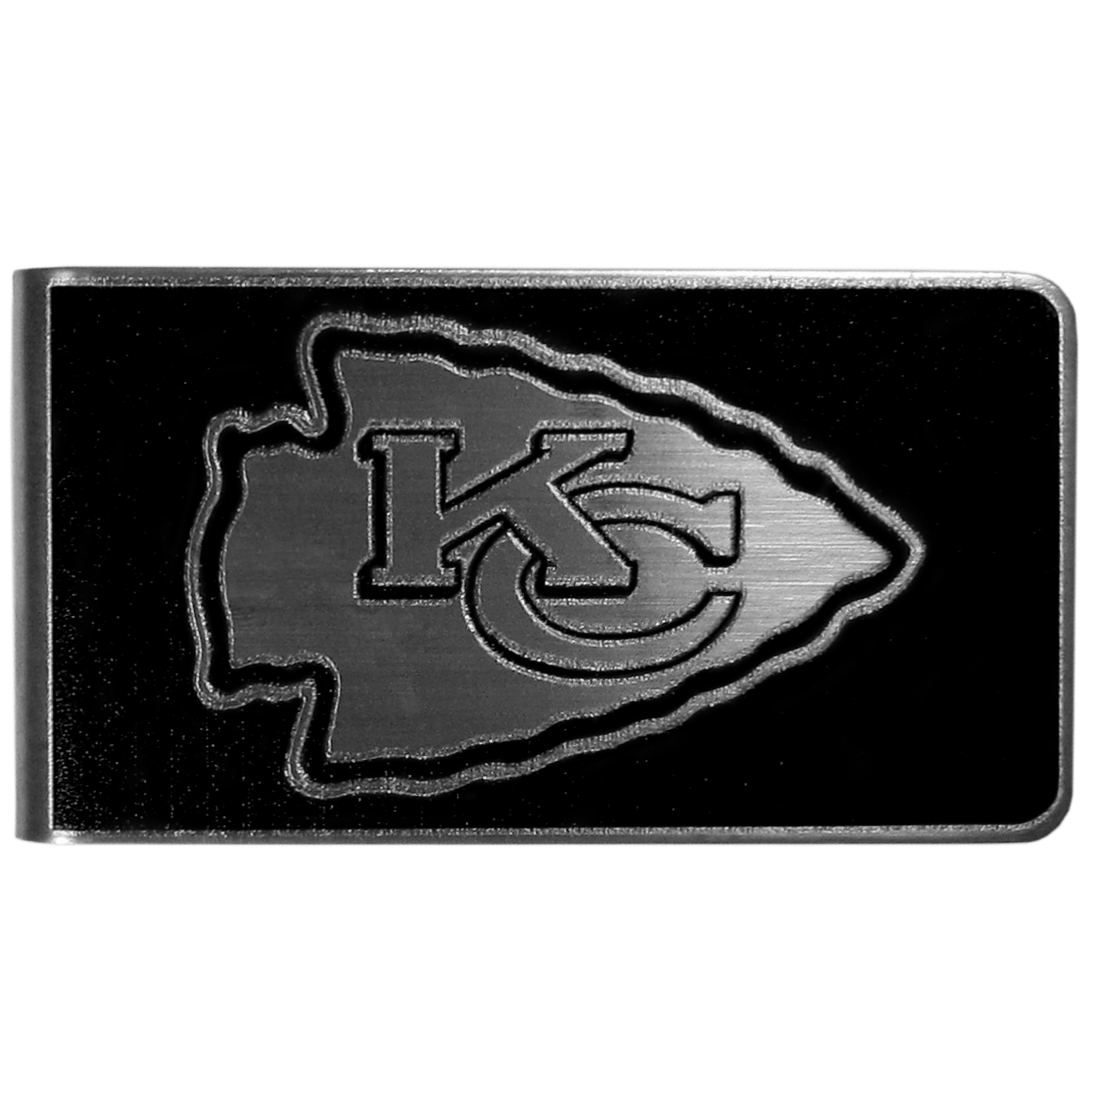 Kansas City Chiefs Black and Steel Money Clip - Our monochromatic steel money clips have a classic style and superior quality. The strong, steel clip has a black overlay of the Kansas City Chiefs logo over the brushed metal finish creating a stylish men's fashion accessory that would make any fan proud.